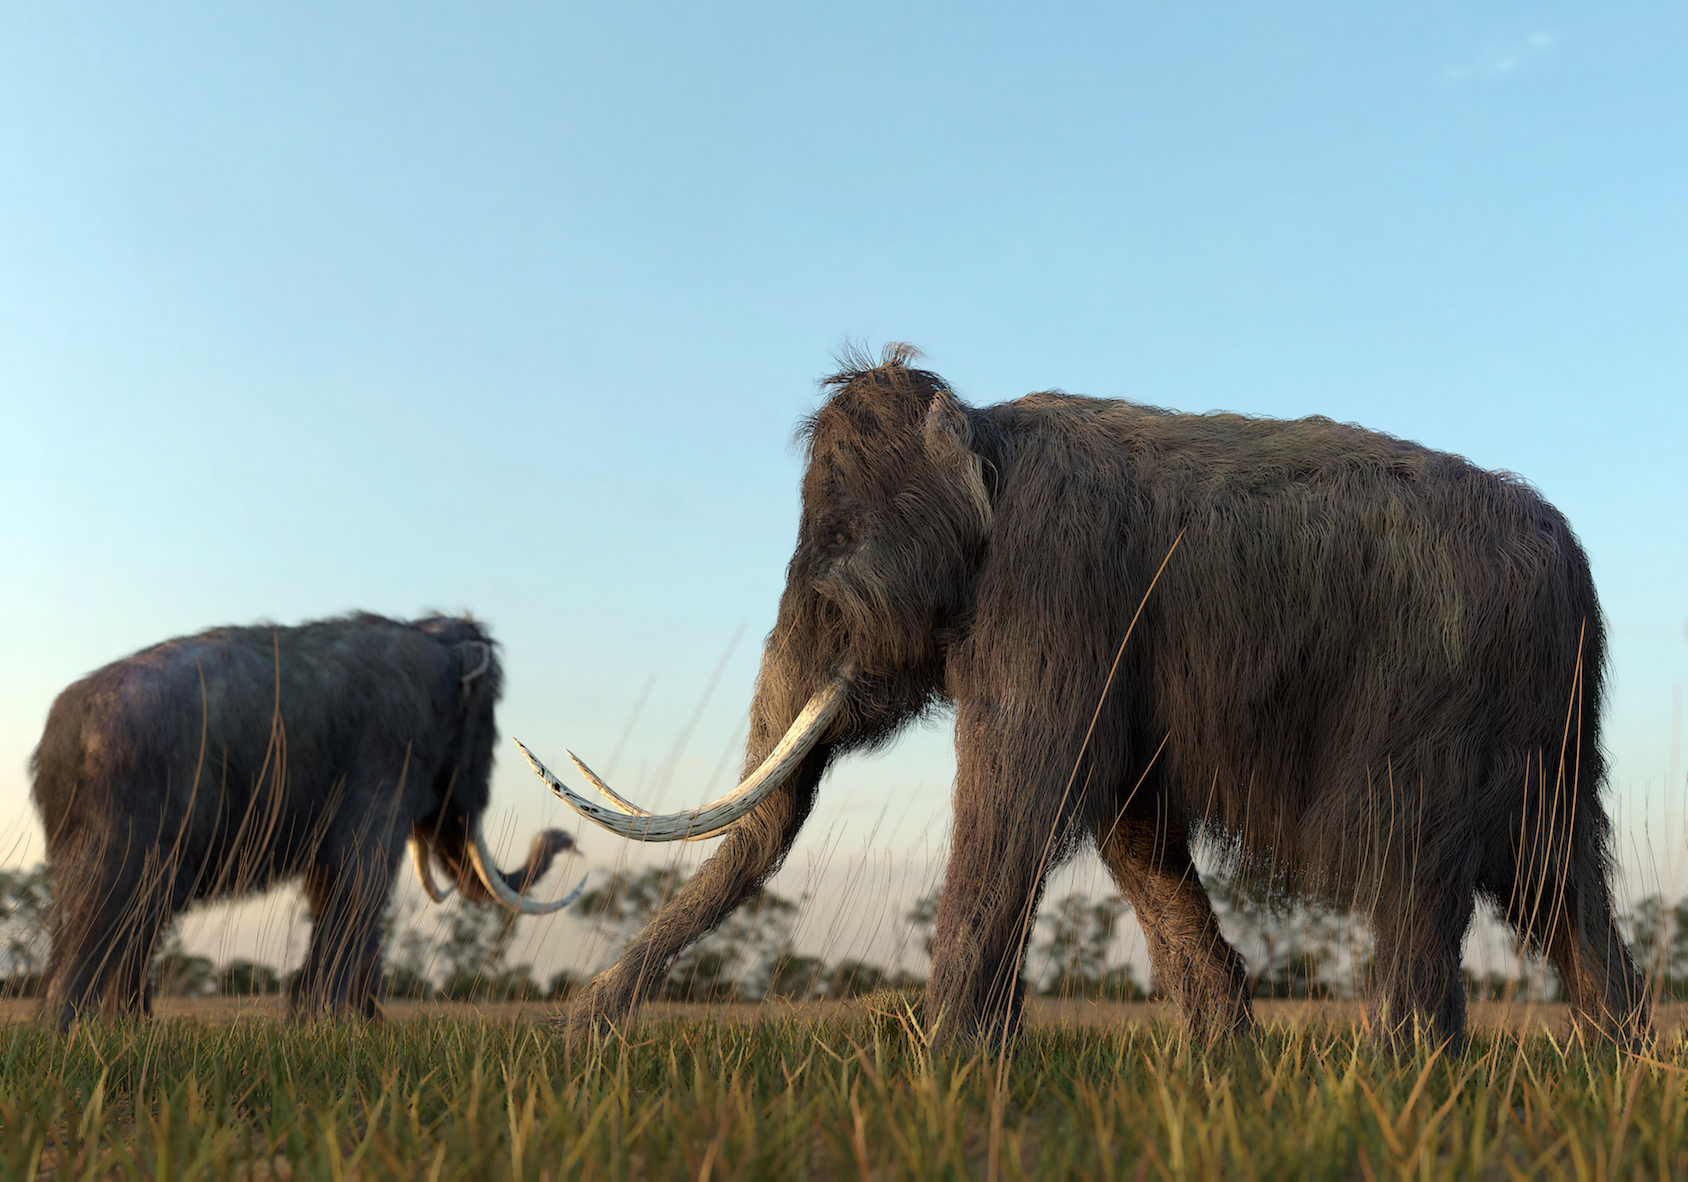 You'd think Jurassic Park movies would have warned scientists not to bring dinosaurs back from the dead. But woolly mammoths might be making a comeback!